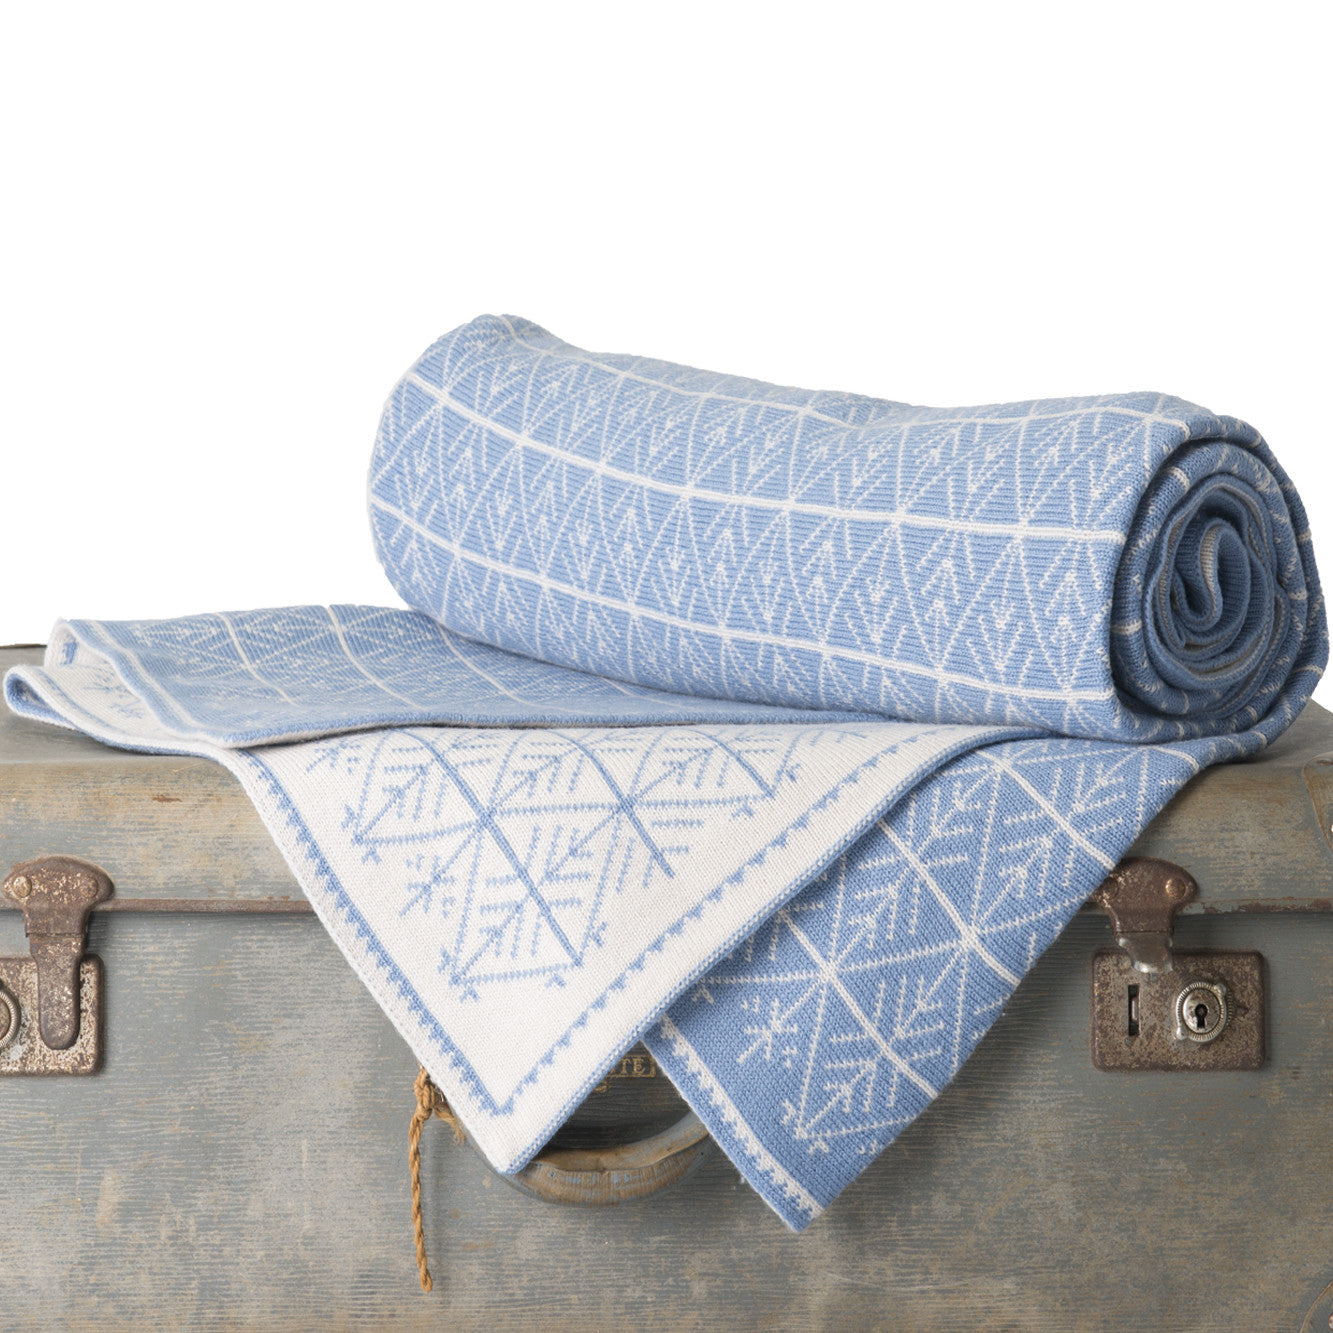 Shades of Blue - Blankets & Throws